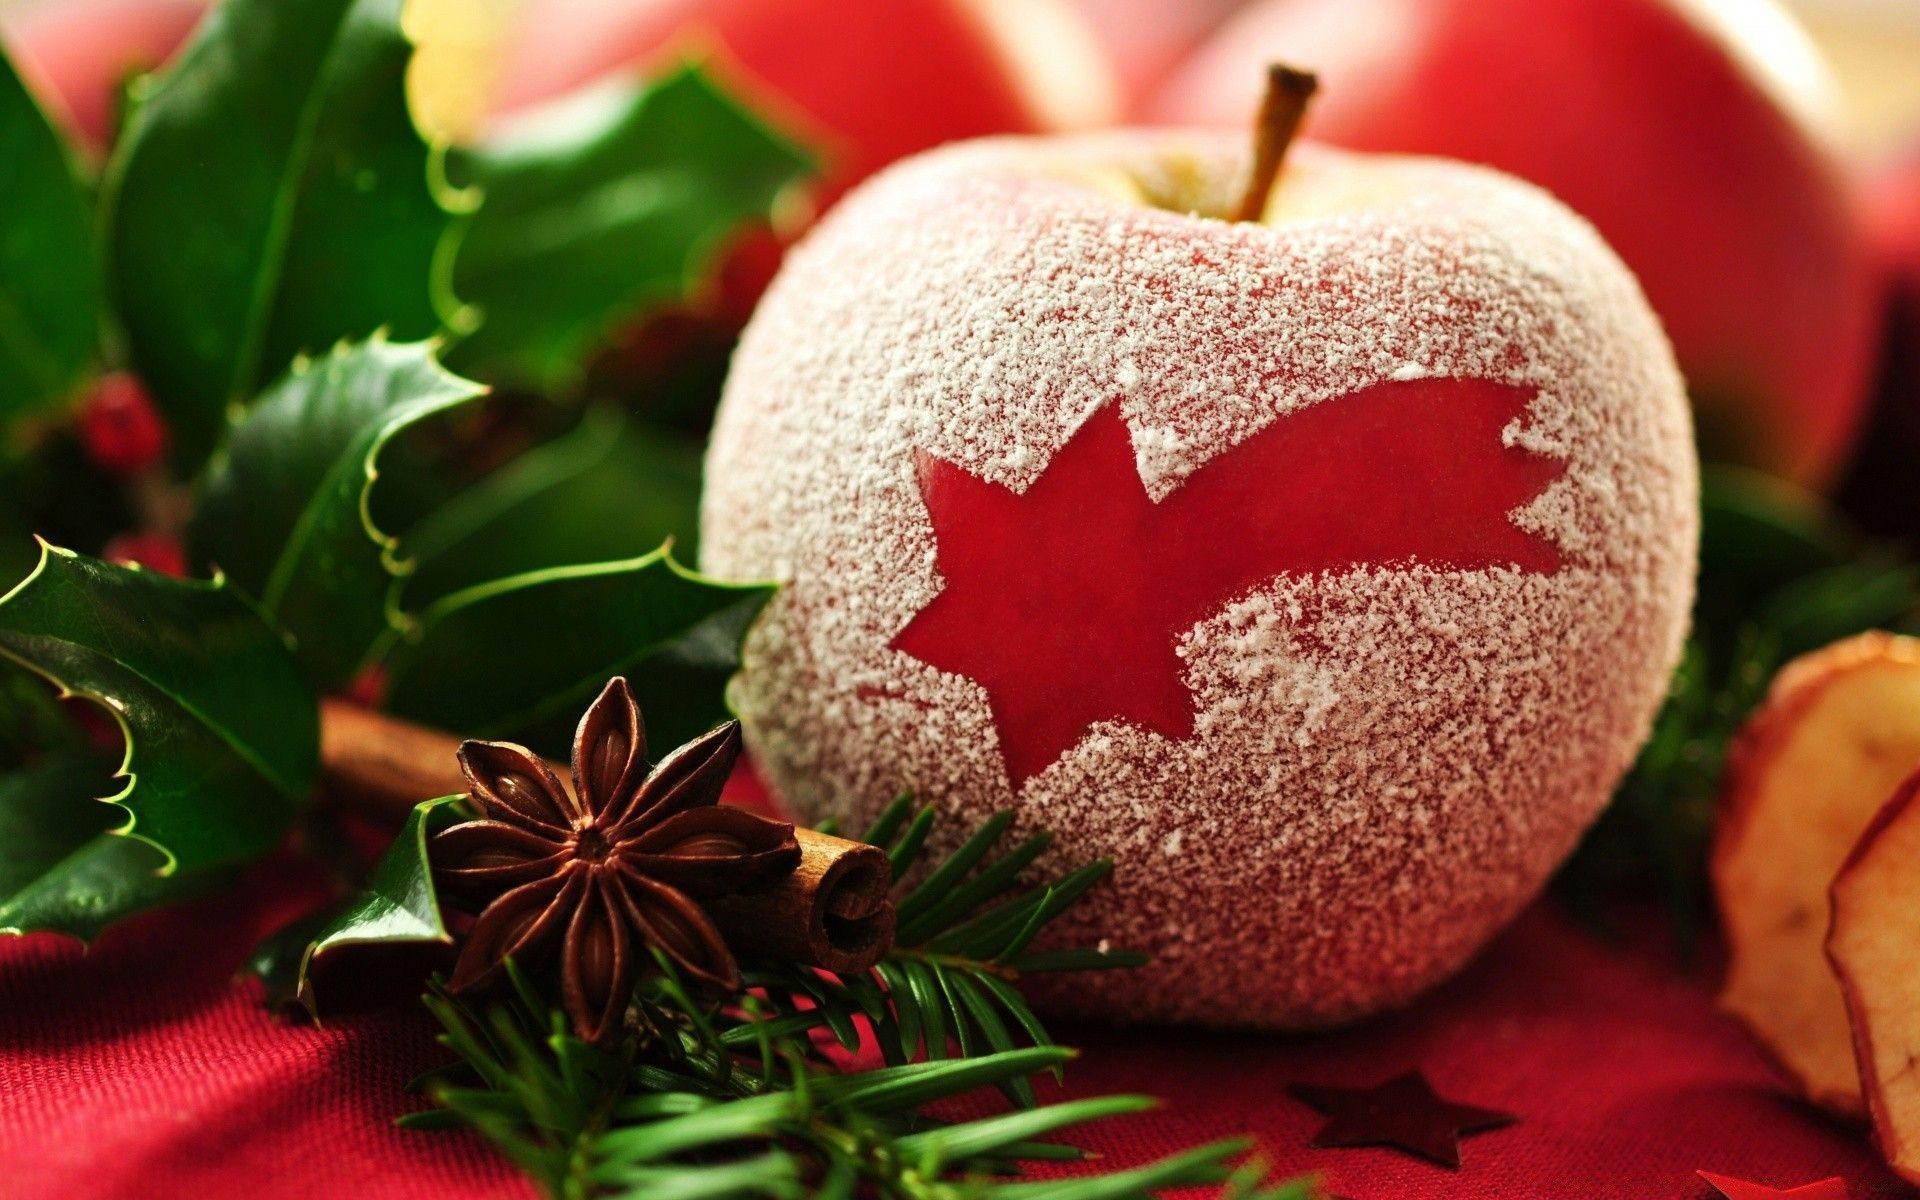 Christmas Apple. Android wallpapers for free.